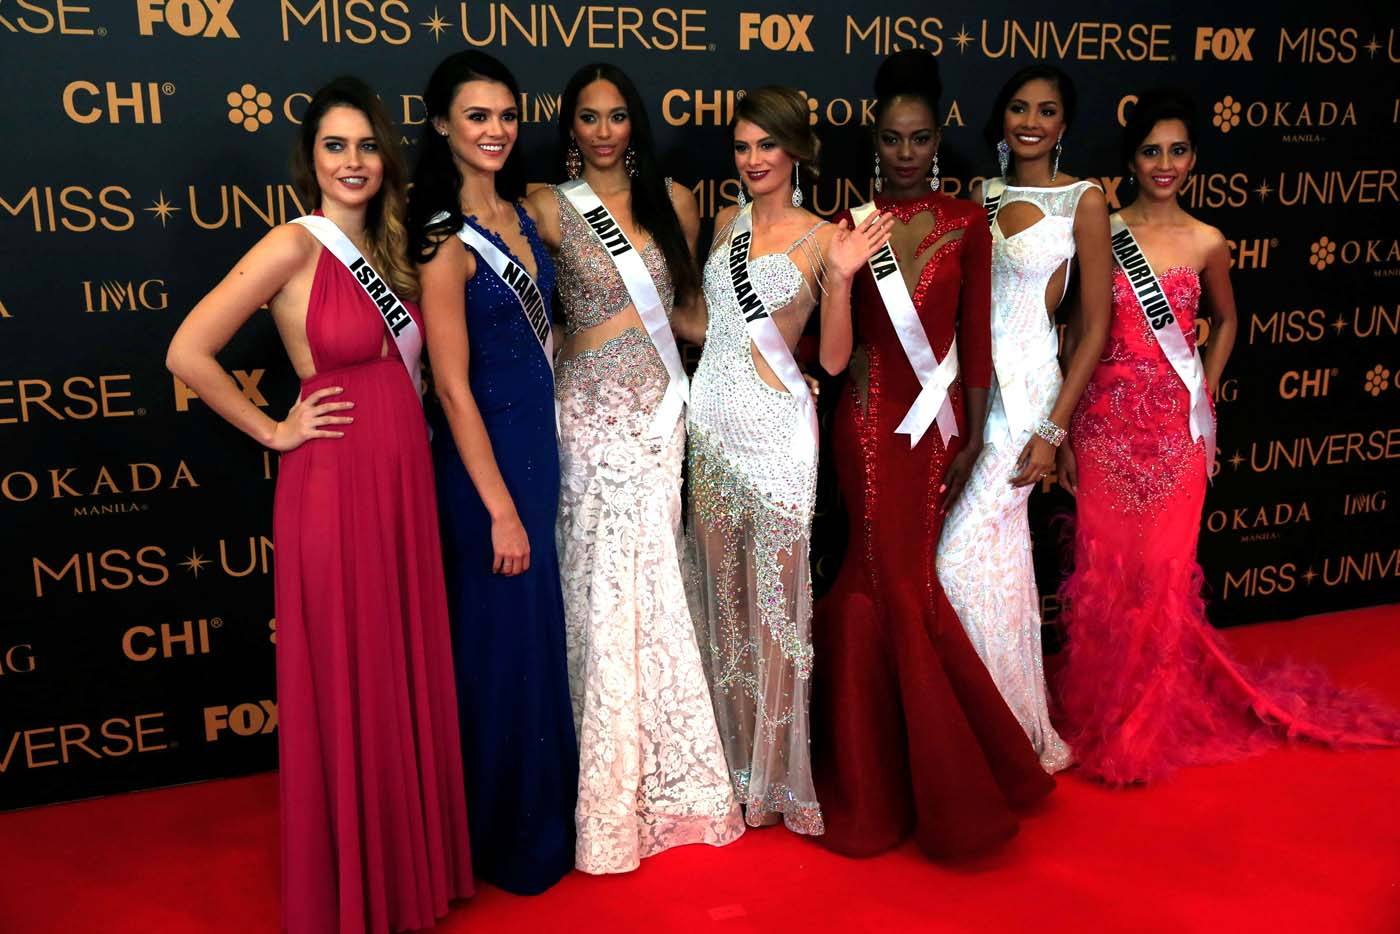 Miss Universe candidates pose for a picture during a red carpet inside a SMX convention in metro Manila, Philippines January 29, 2017. In Photo from L-R: Miss Israel Yam Kaspers Anshel, Miss Namibia Lizelle Esterhuizen, Miss Haiti Raquel Pelissier, Miss Germany Johanna Acs, Miss Kenya Mary Esther Were, Miss Jamaica Isabel Dalley and Miss Mauritius Kushboo Ramnawaj. REUTERS/Romeo Ranoco